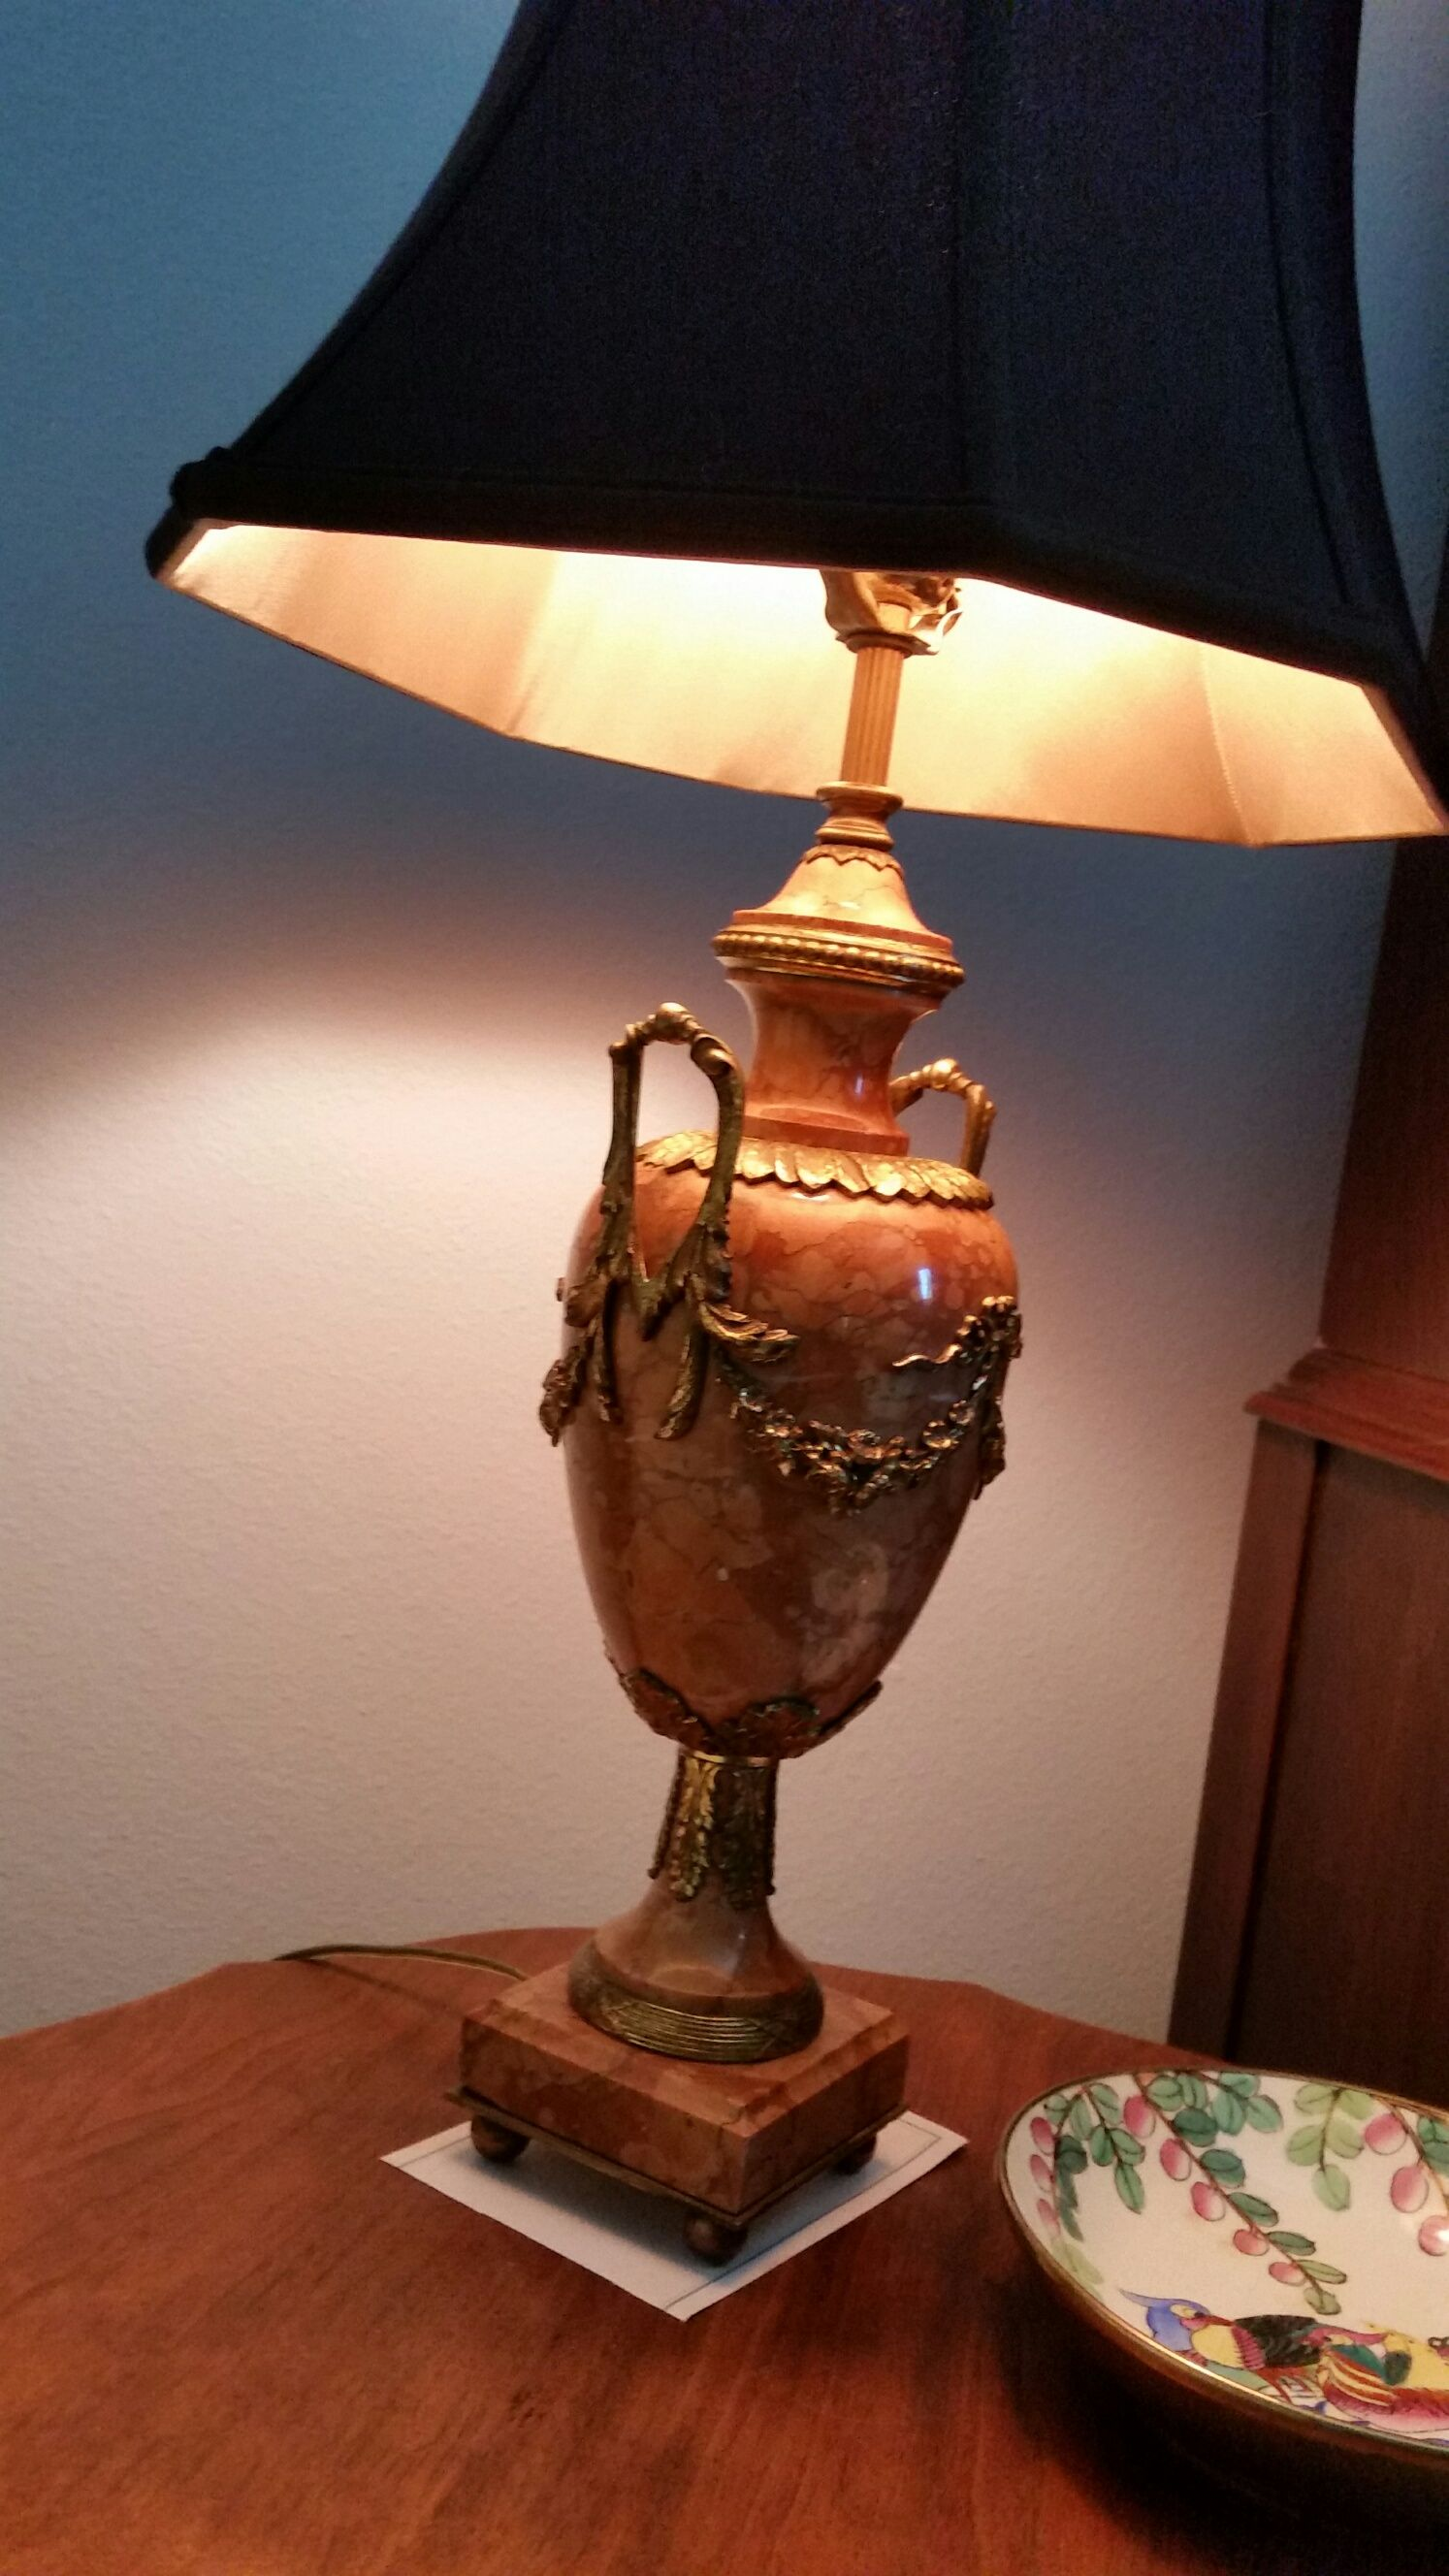 Circa 1800's French Marble and Ormalu Lamps, (pair) with shantung shades. Liking the M's on the side handles.